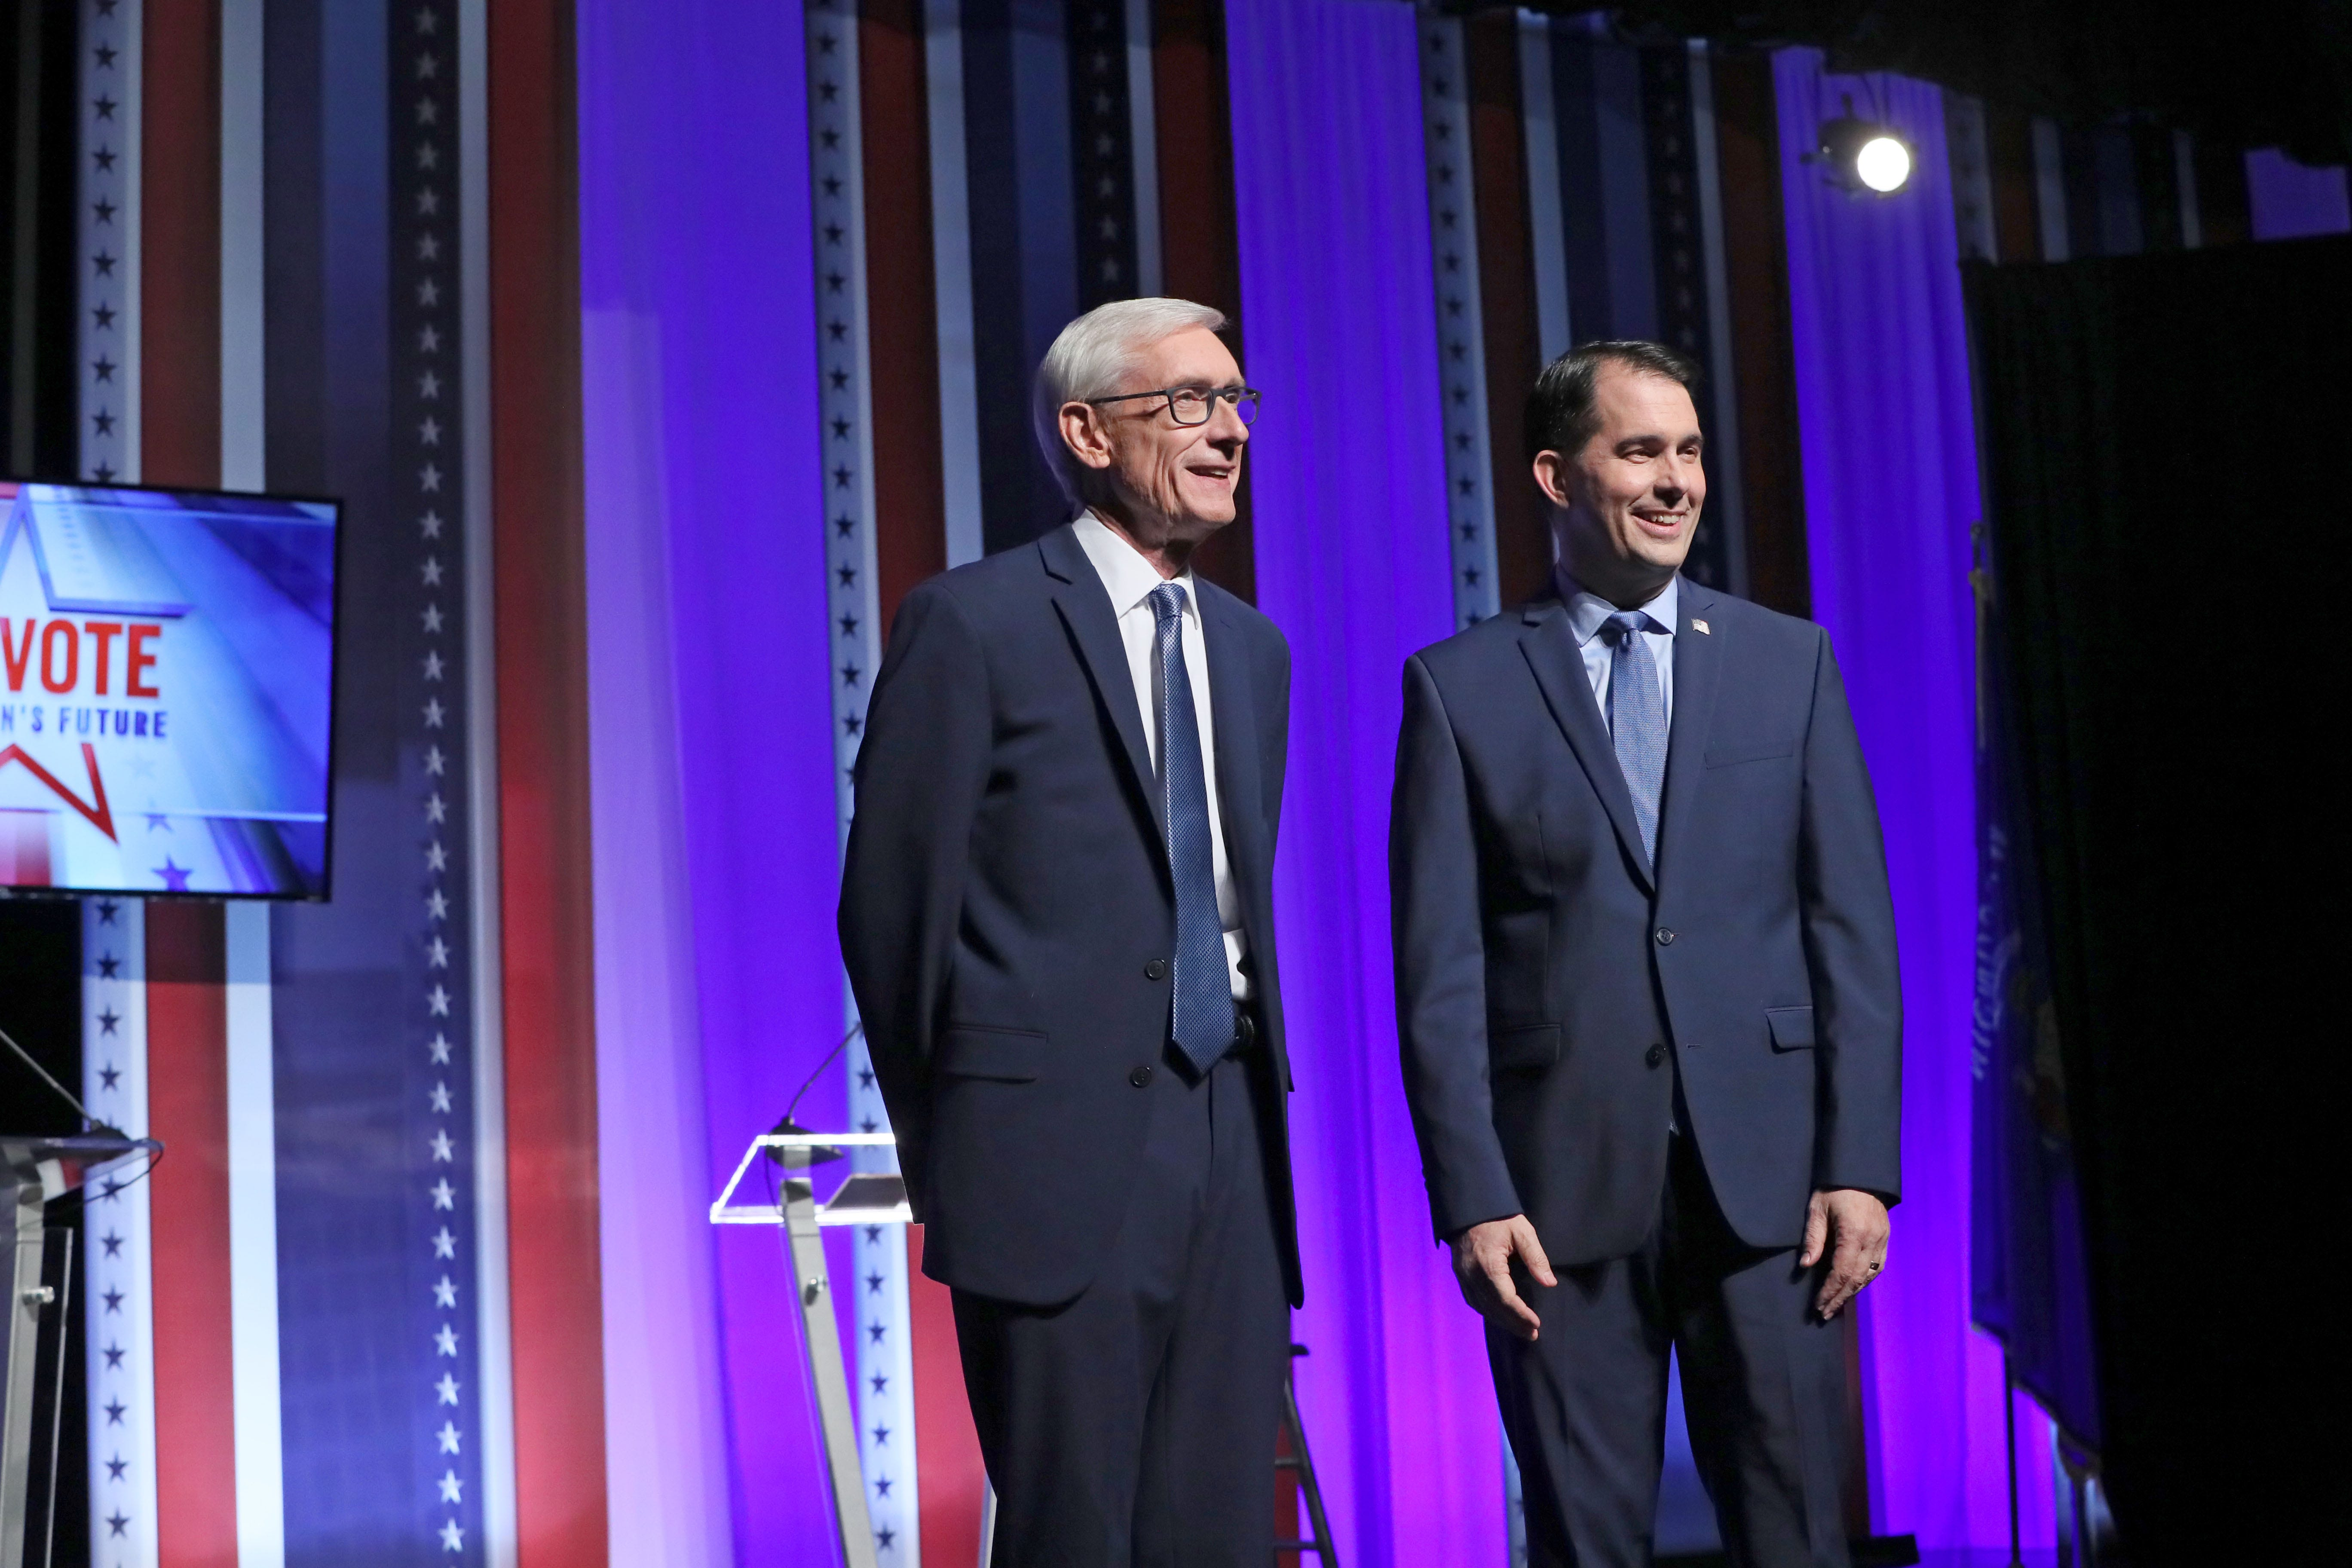 Shifting stances: Scott Walker takes new position on health care, Tony Evers takes new one on taxes